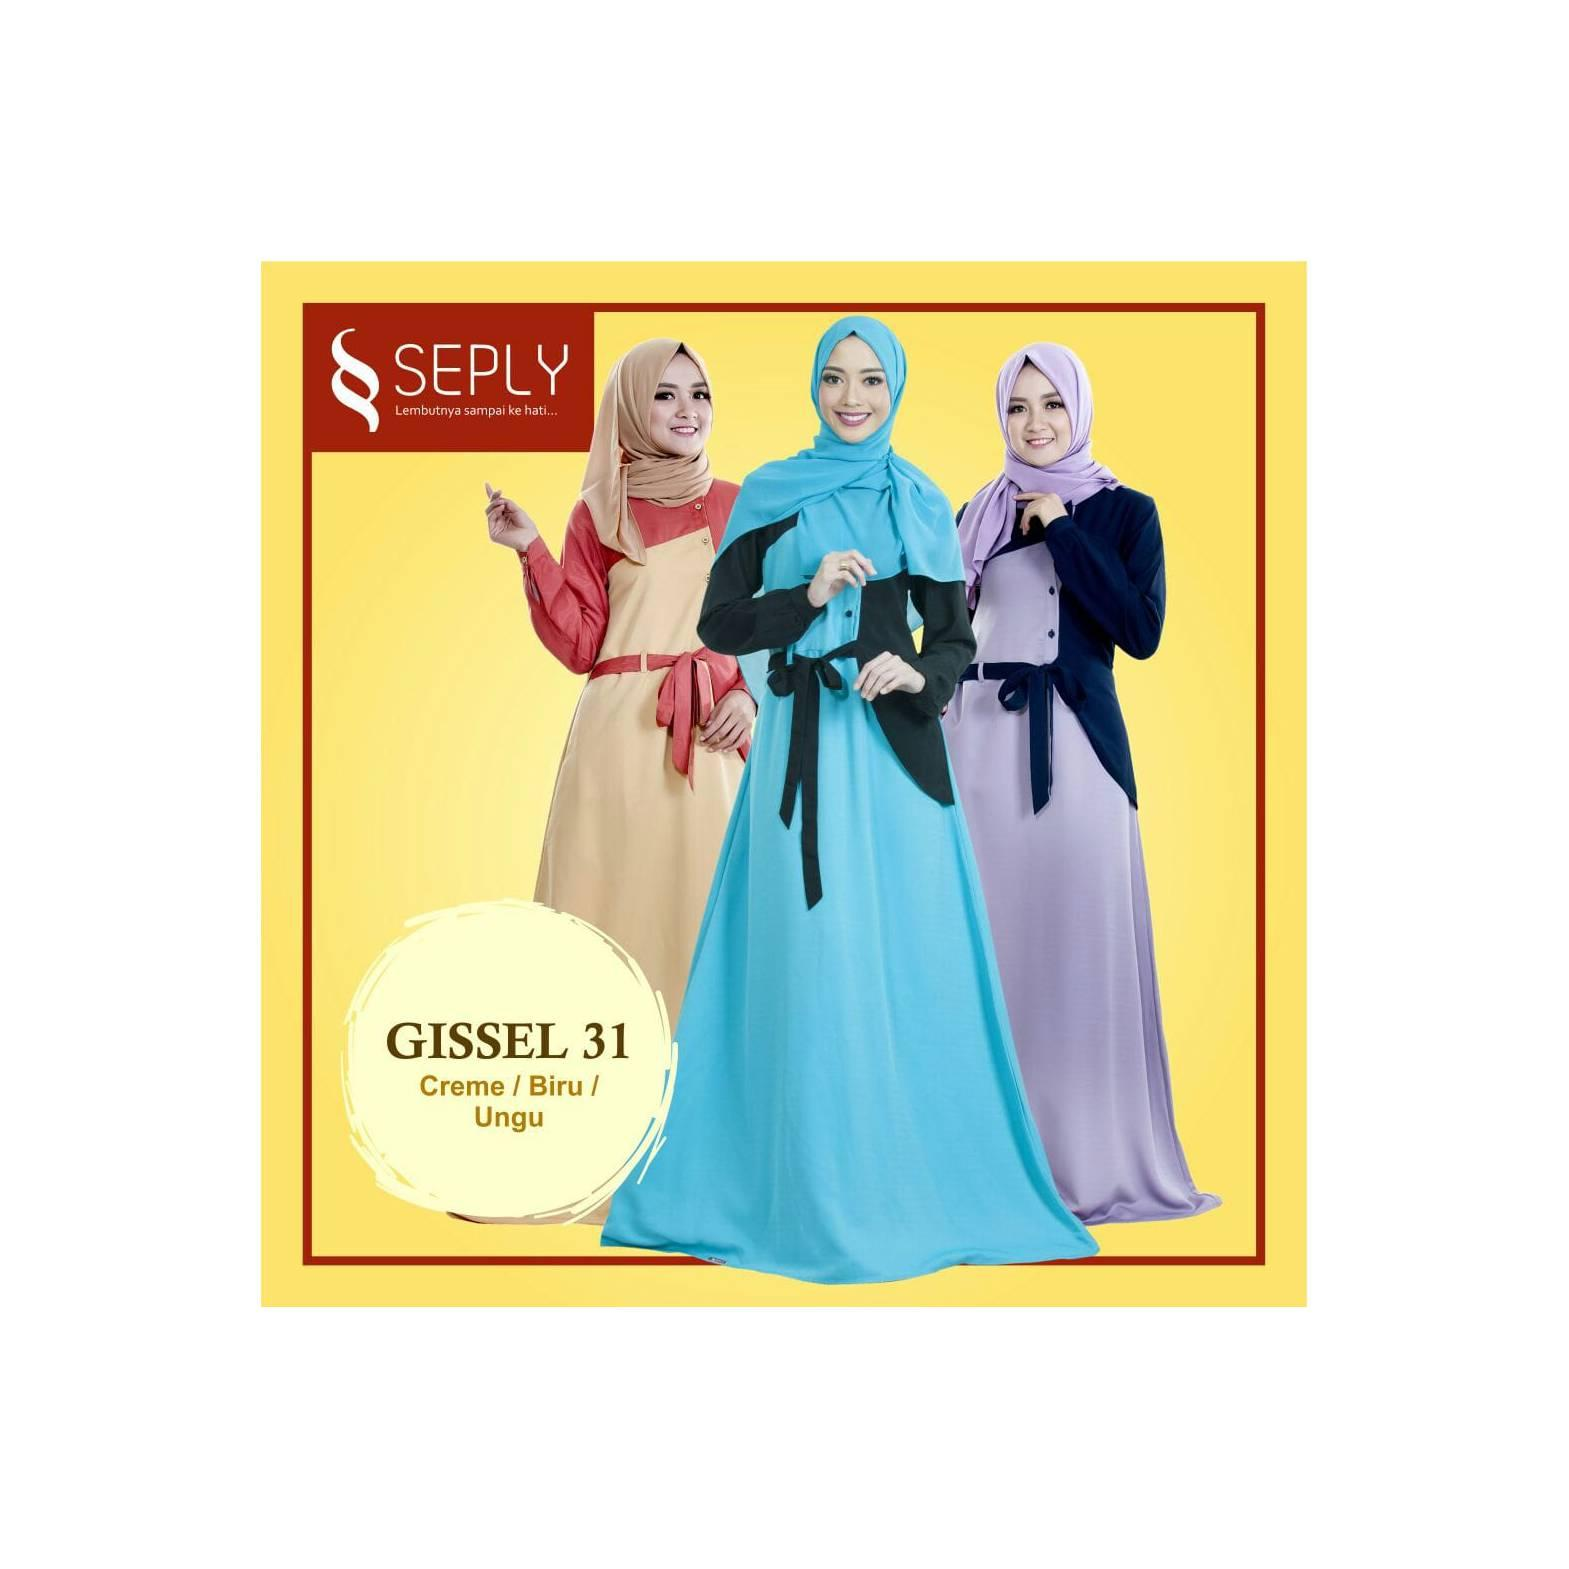 GAMIS SEPLY - GISSEL 31 XL